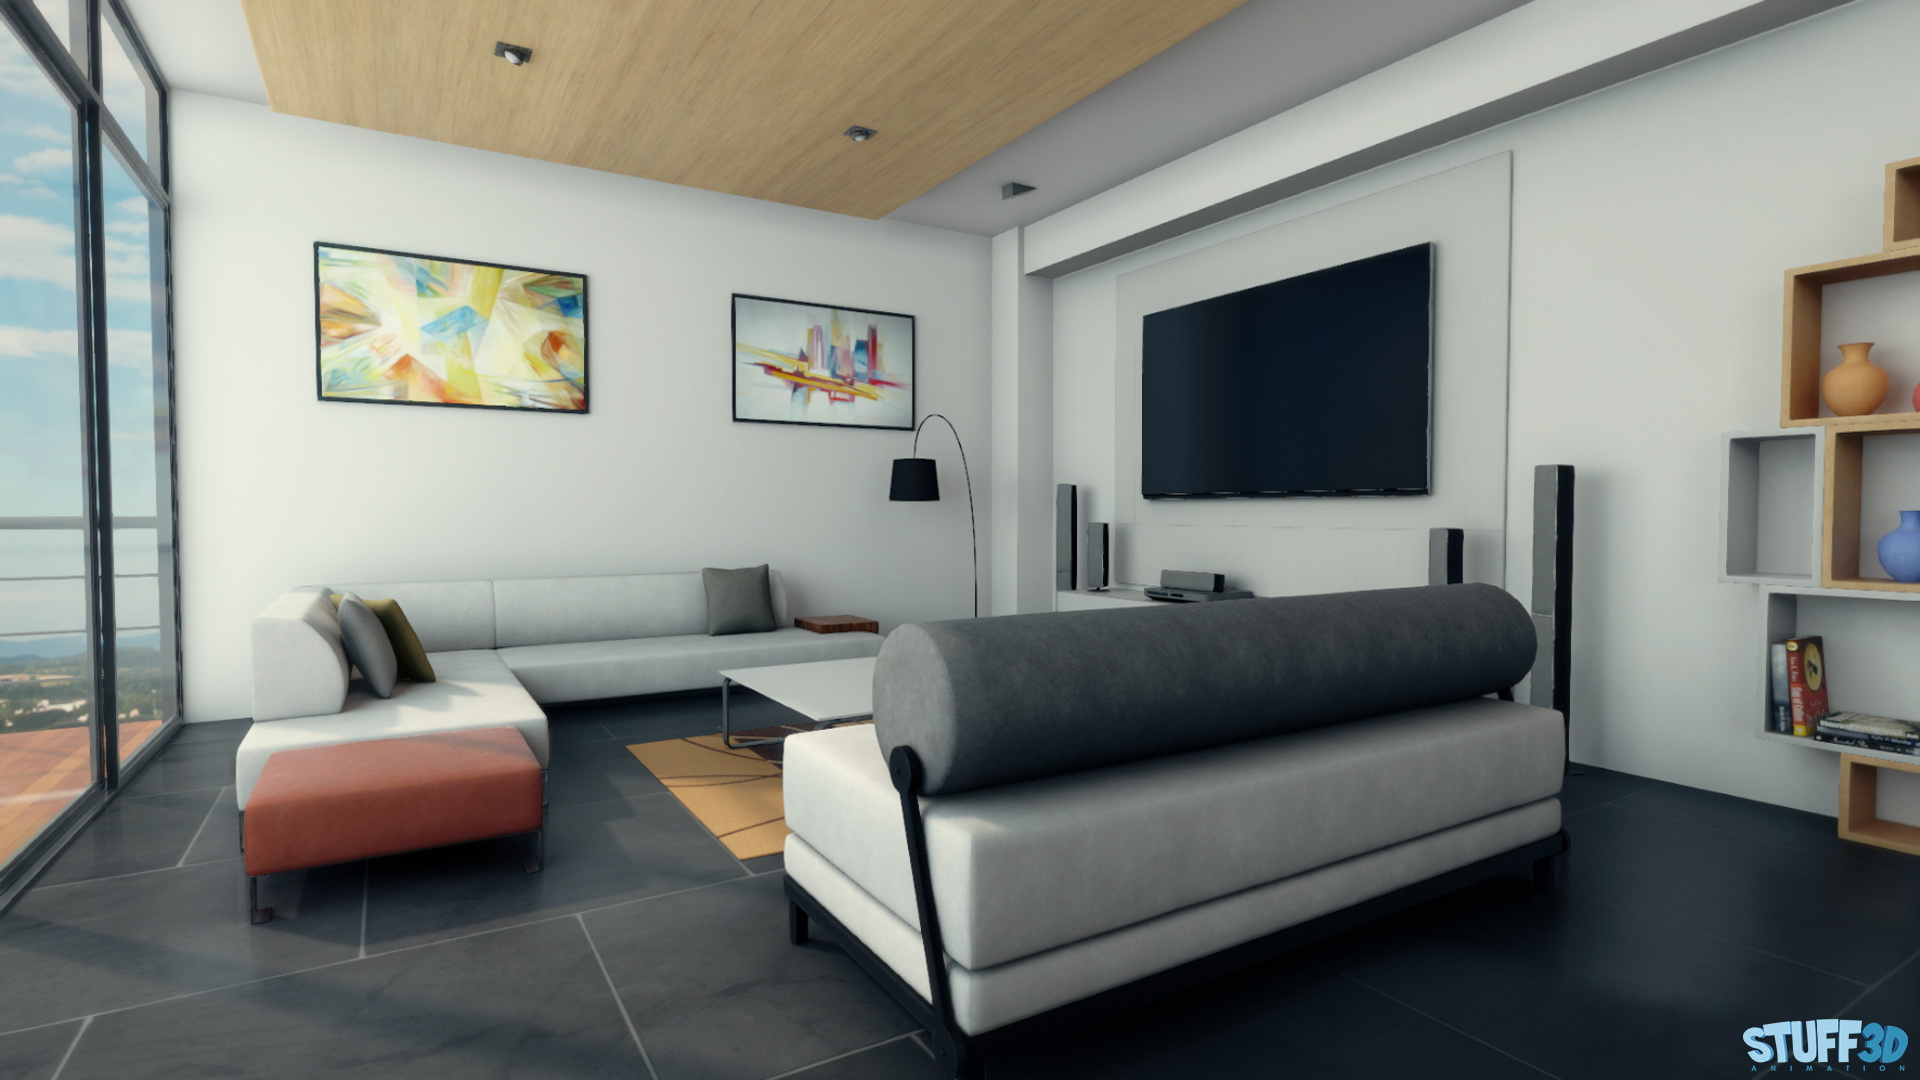 Apartment – Real Time Unity3D – 01